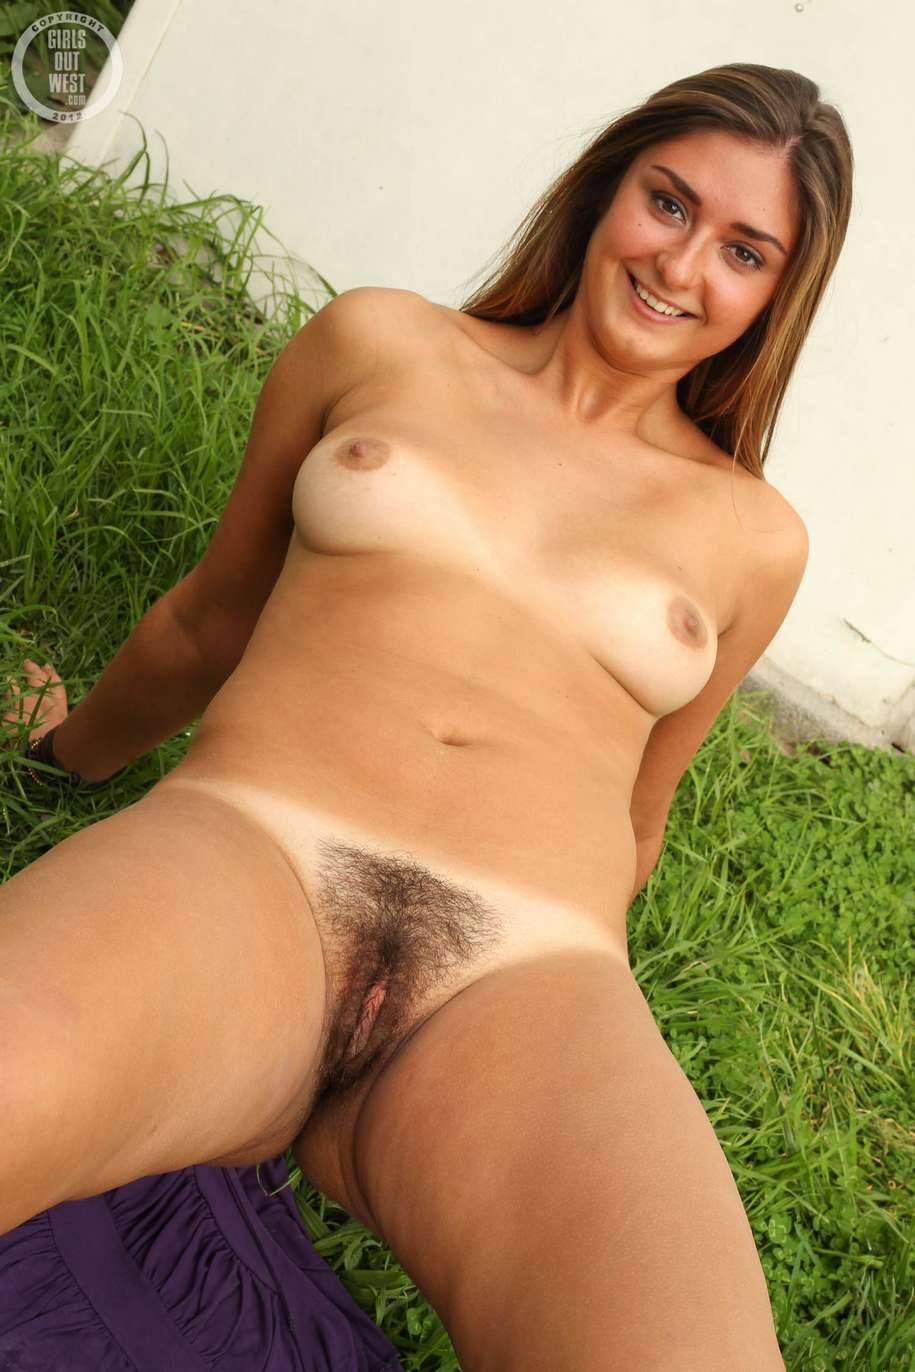 Chubby tan girl naked exact